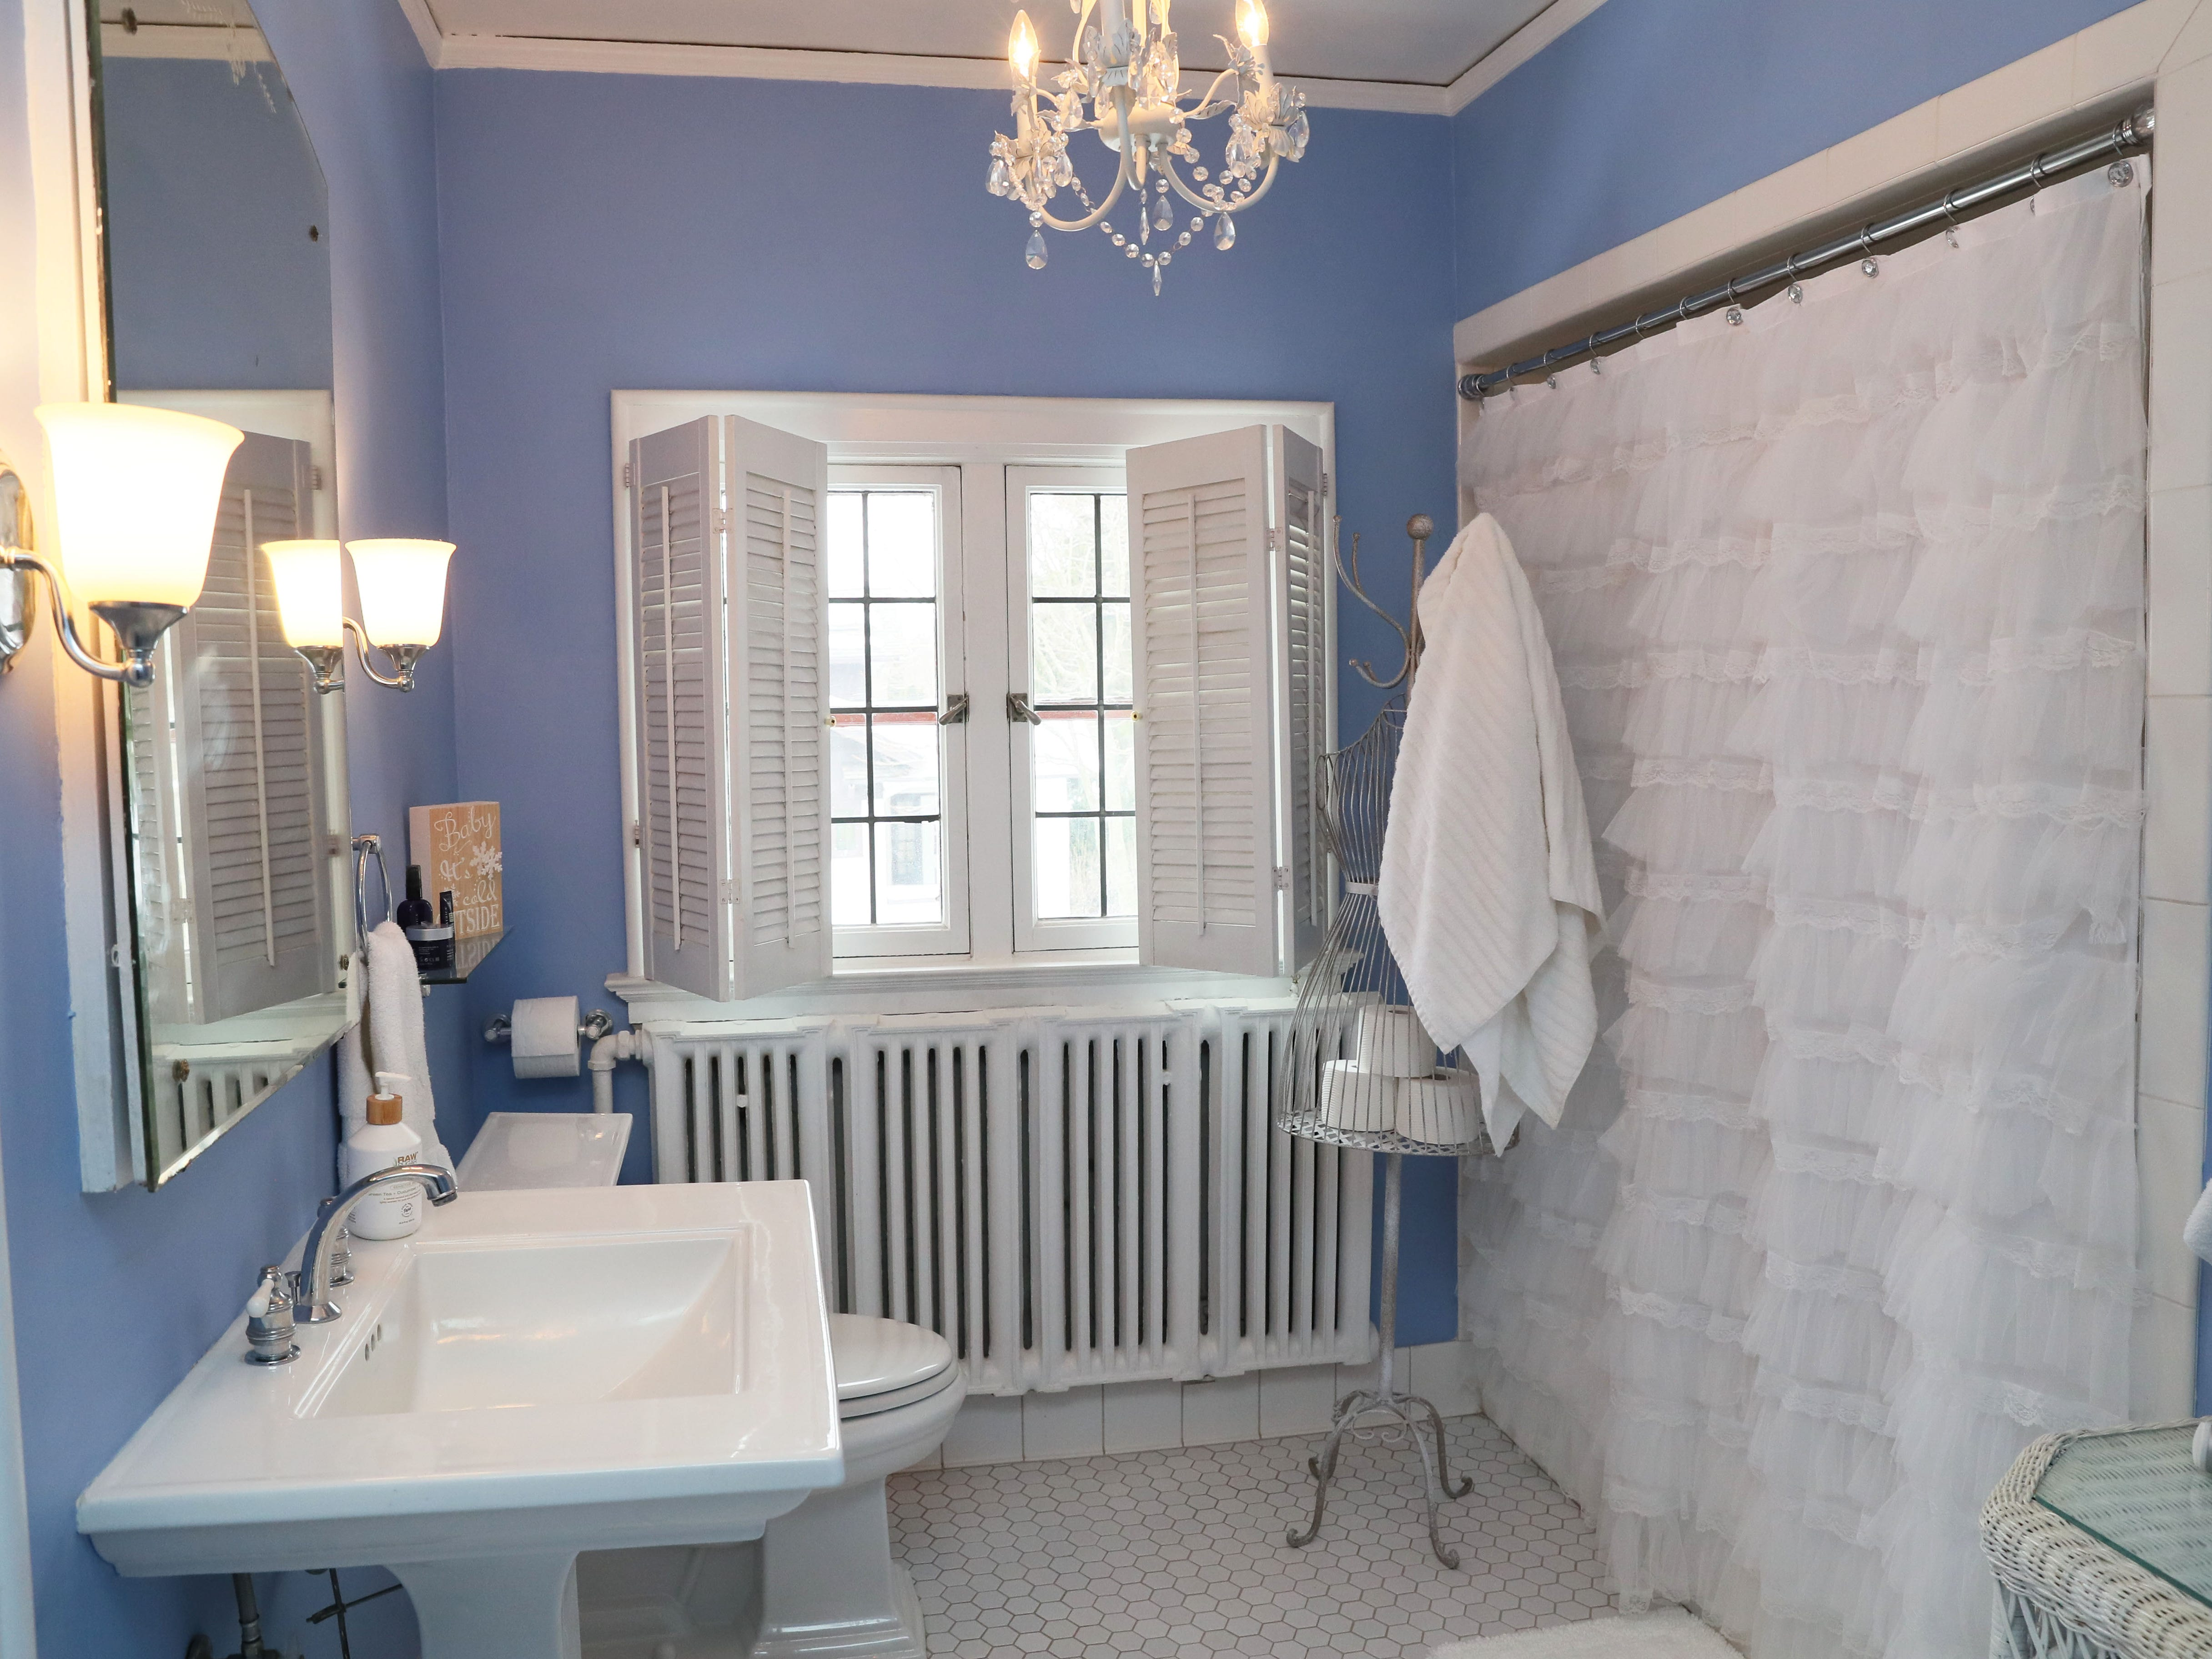 The master bathroom is painted periwinkle.